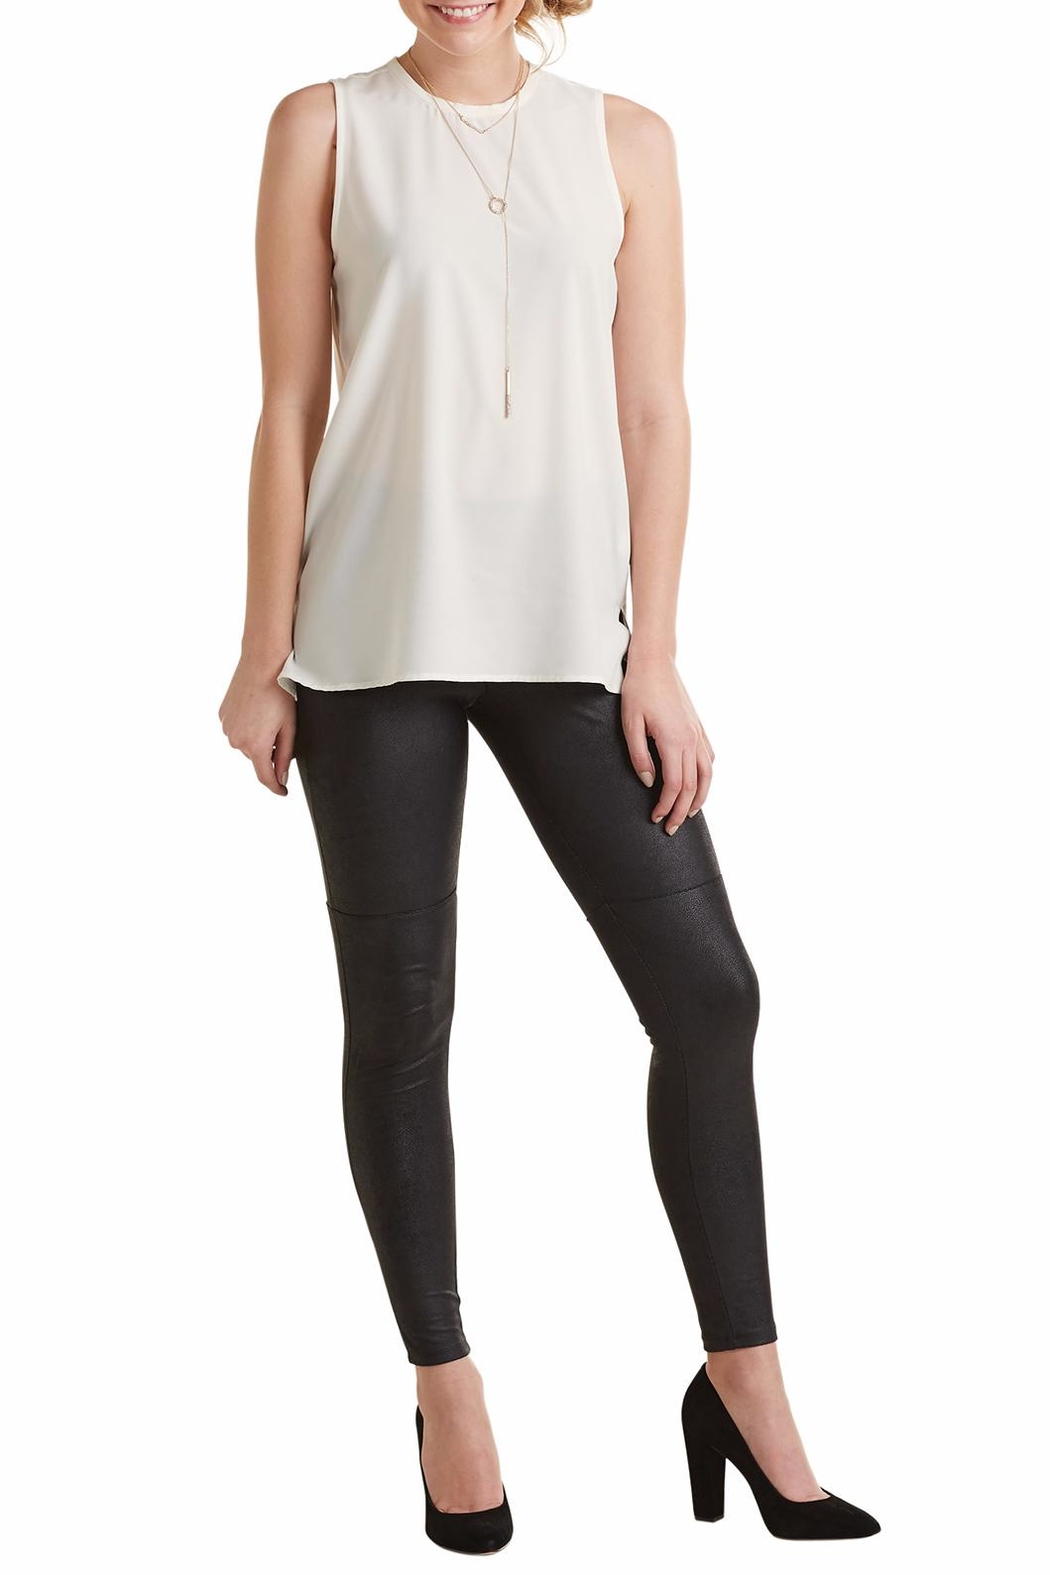 Mud Pie Trip Sleeveless Top - Front Cropped Image